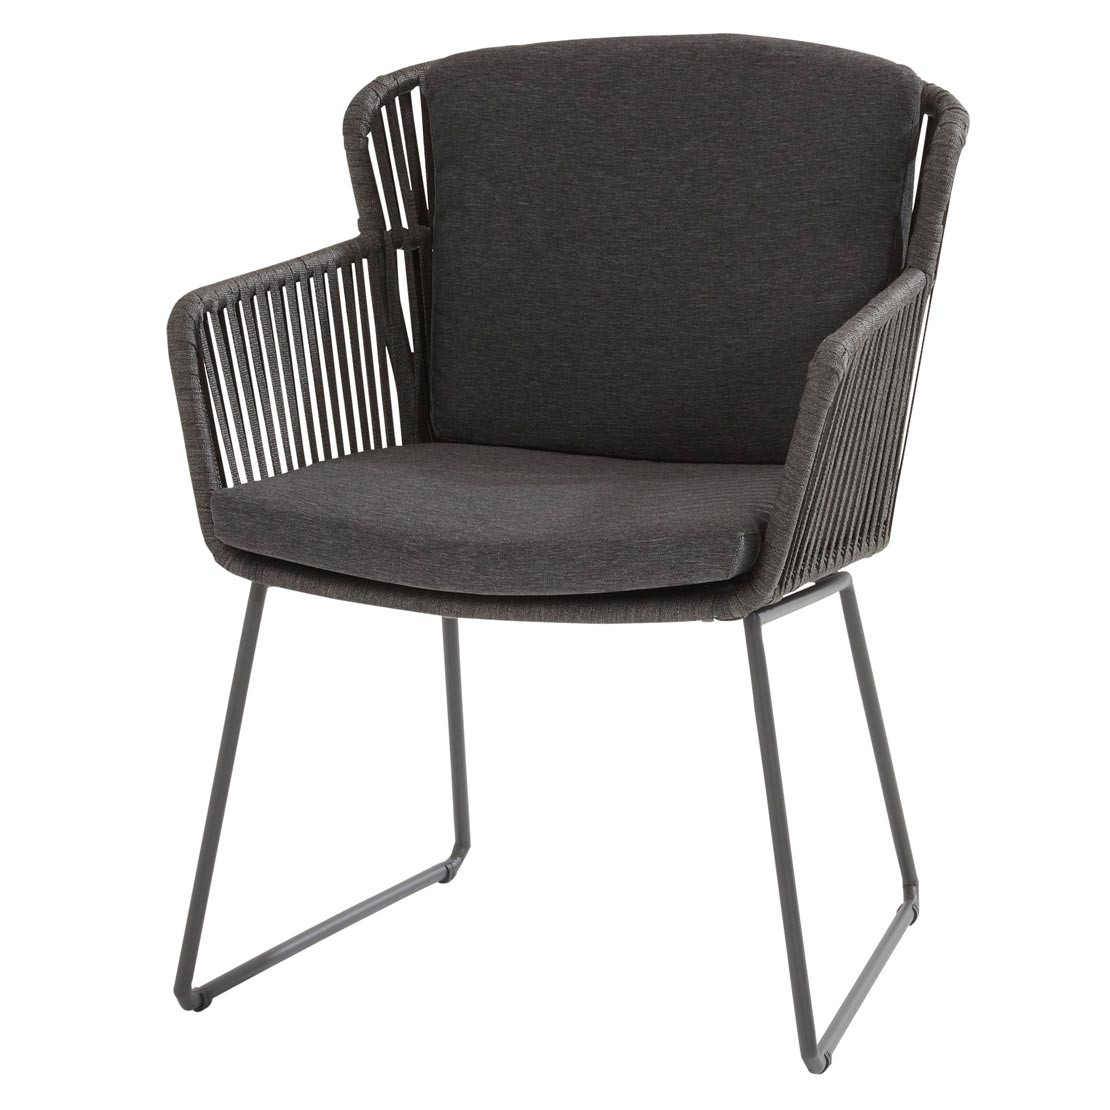 Vitali dining chair Webbing Anthracite with 2 cushions